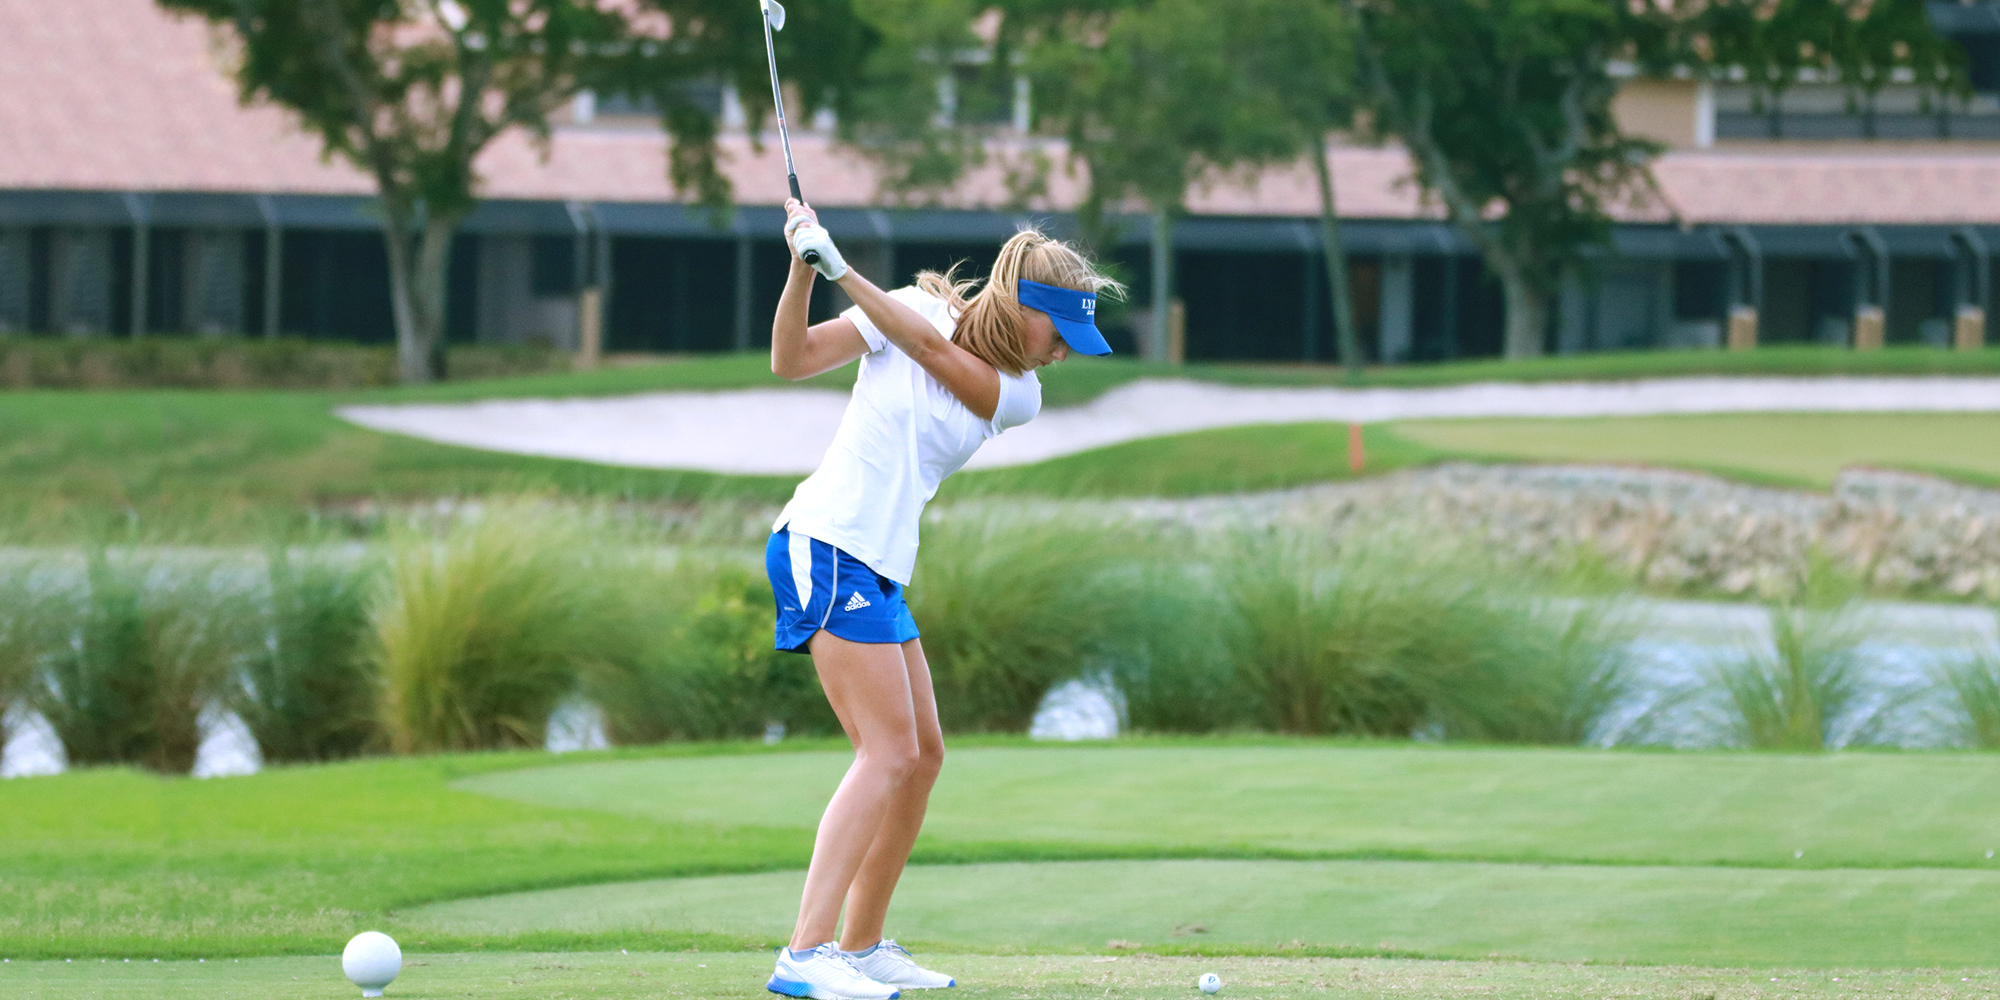 Women's Golf Doesn't Ring Bell at Peggy Kirk Invite